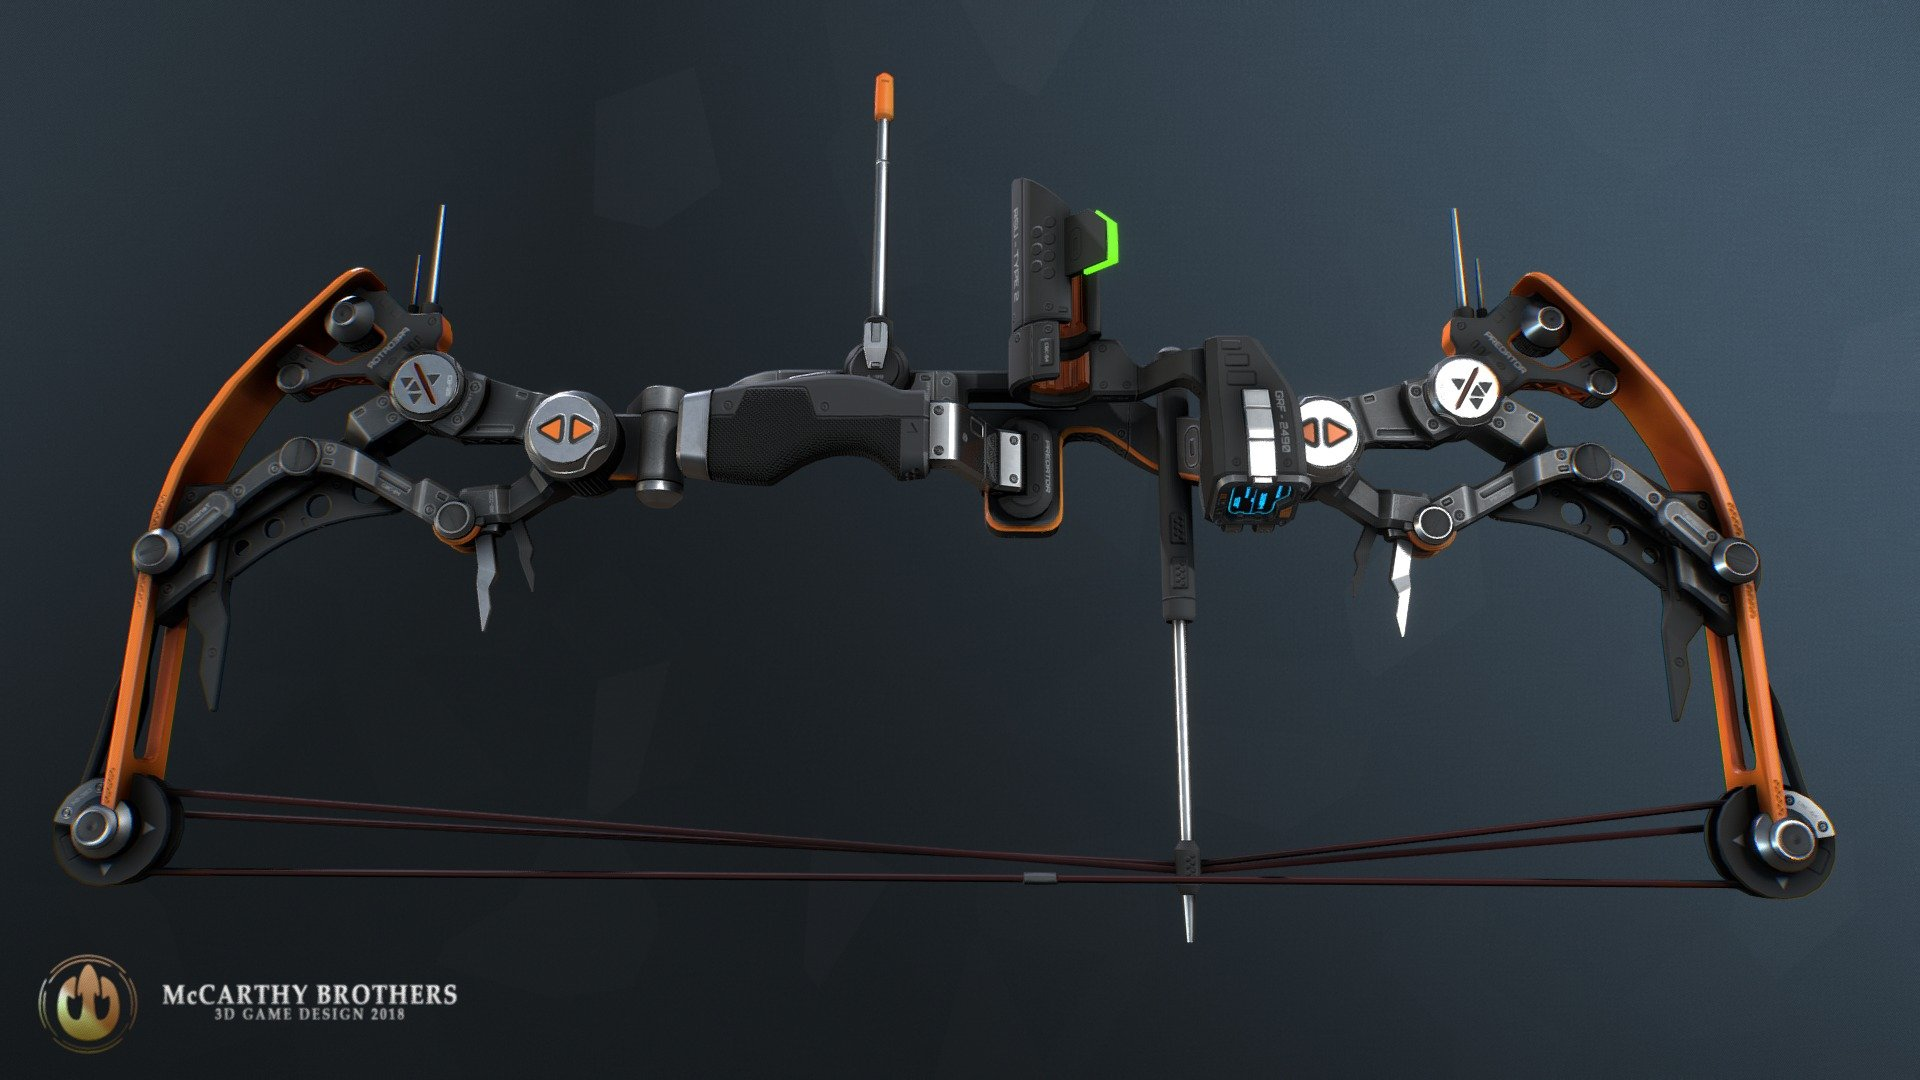 Predator 004 - Compound Bow - Buy Royalty Free 3D model by